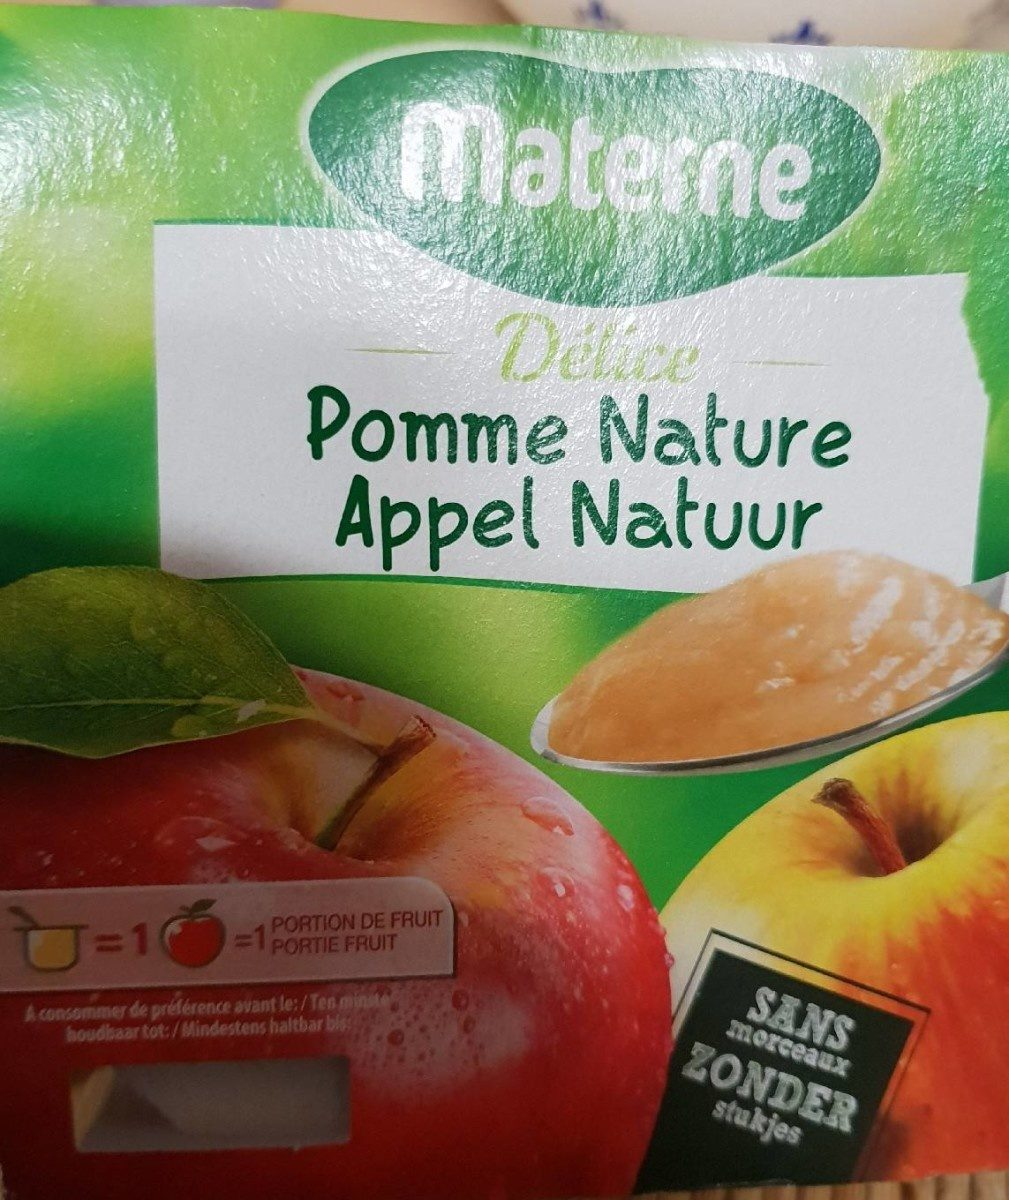 Pomme nature - Product - fr